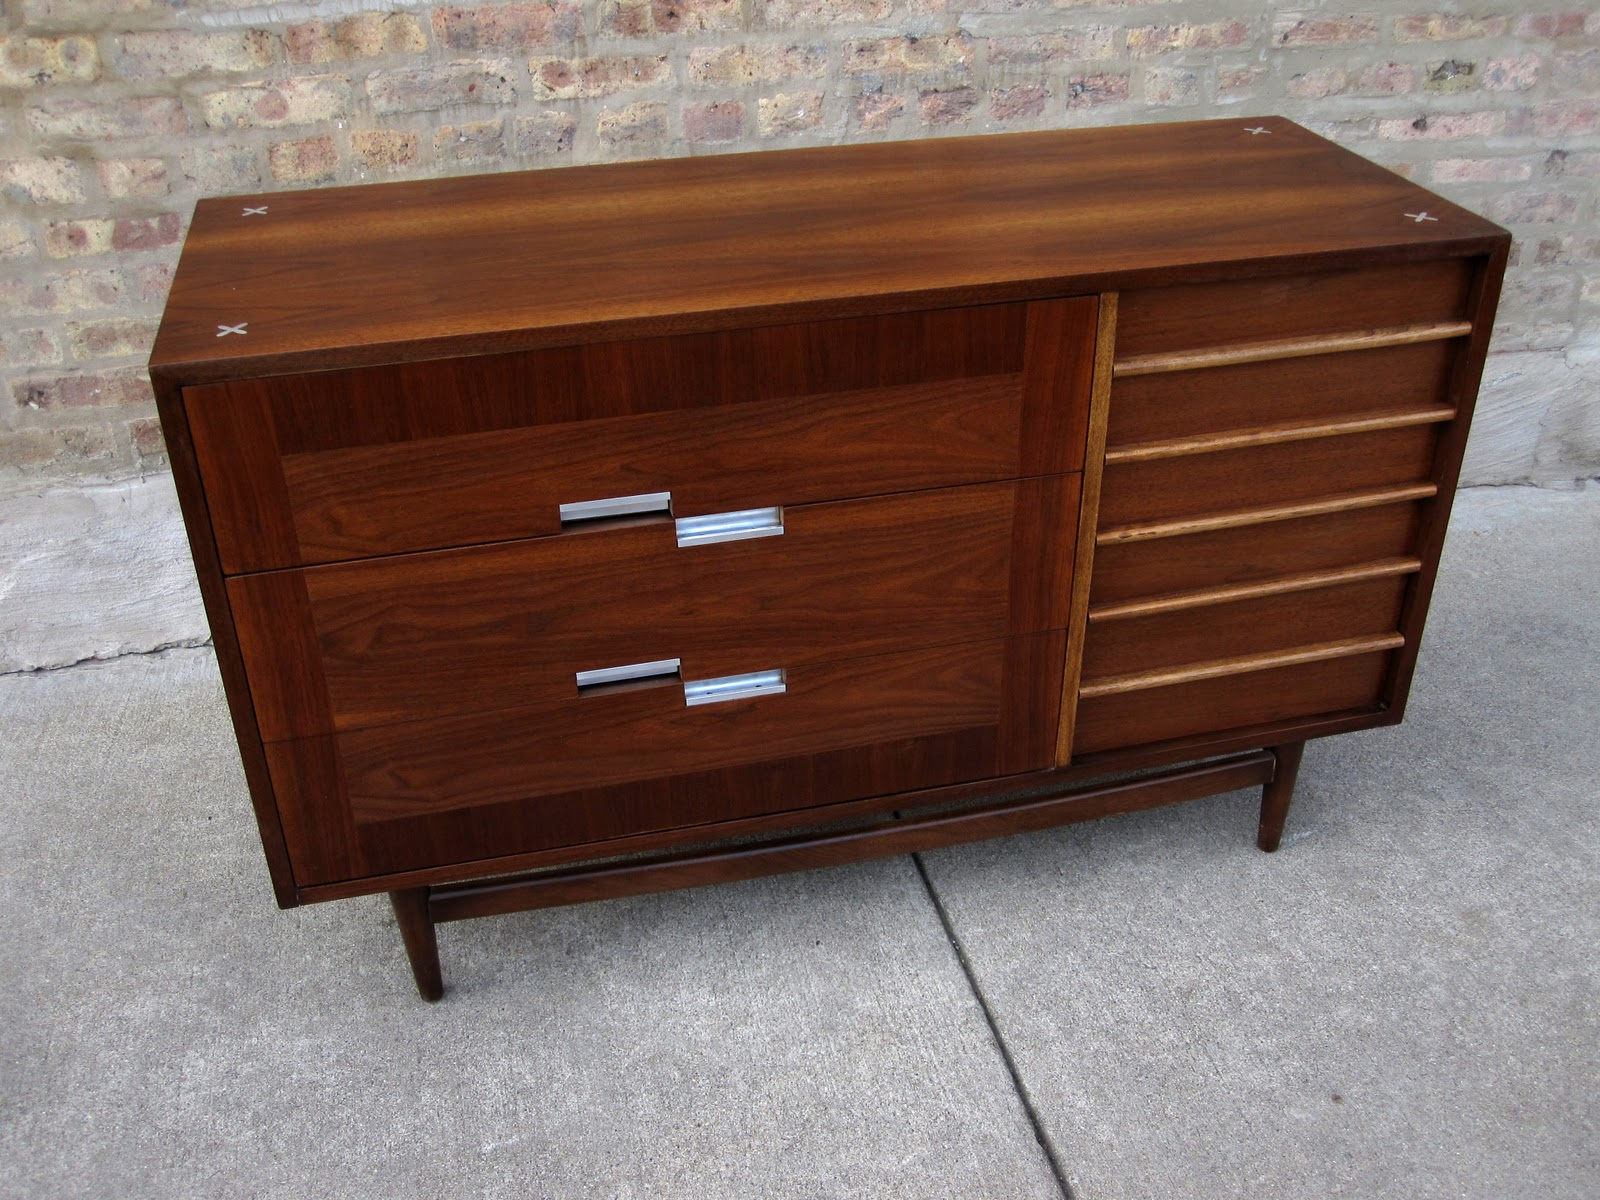 american of martinsville bedroom furniture rehasuxaqim 18039 | img 3024